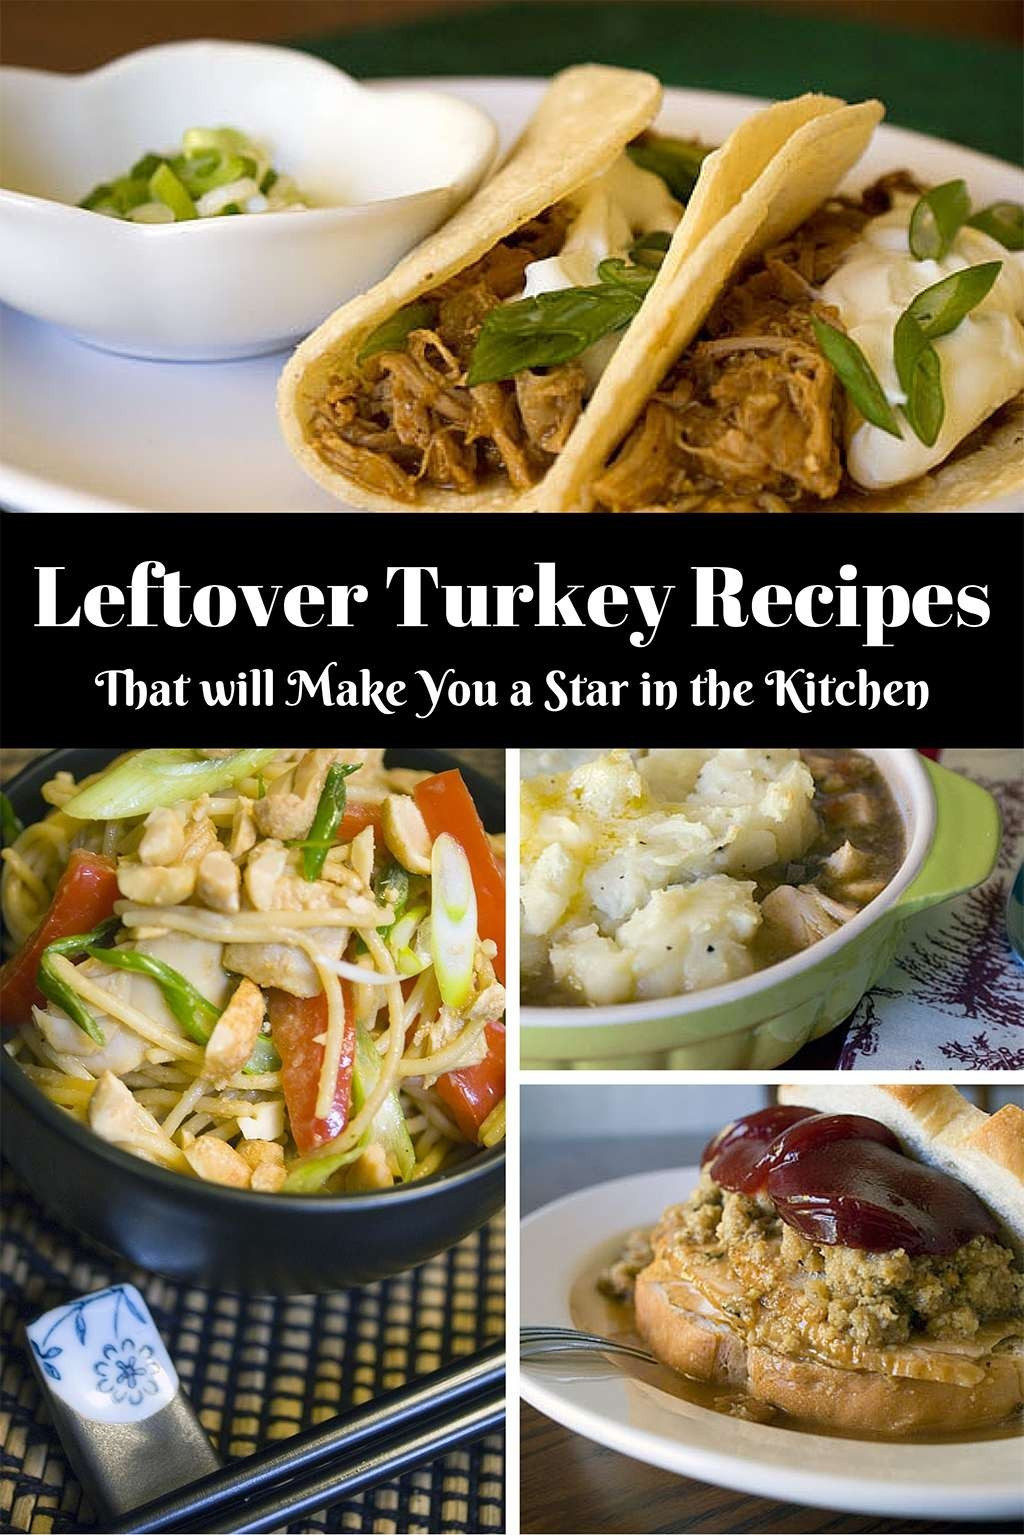 The Kitchen Thanksgiving Recipes  Leftover Turkey Recipes That Will Make You a Star in the